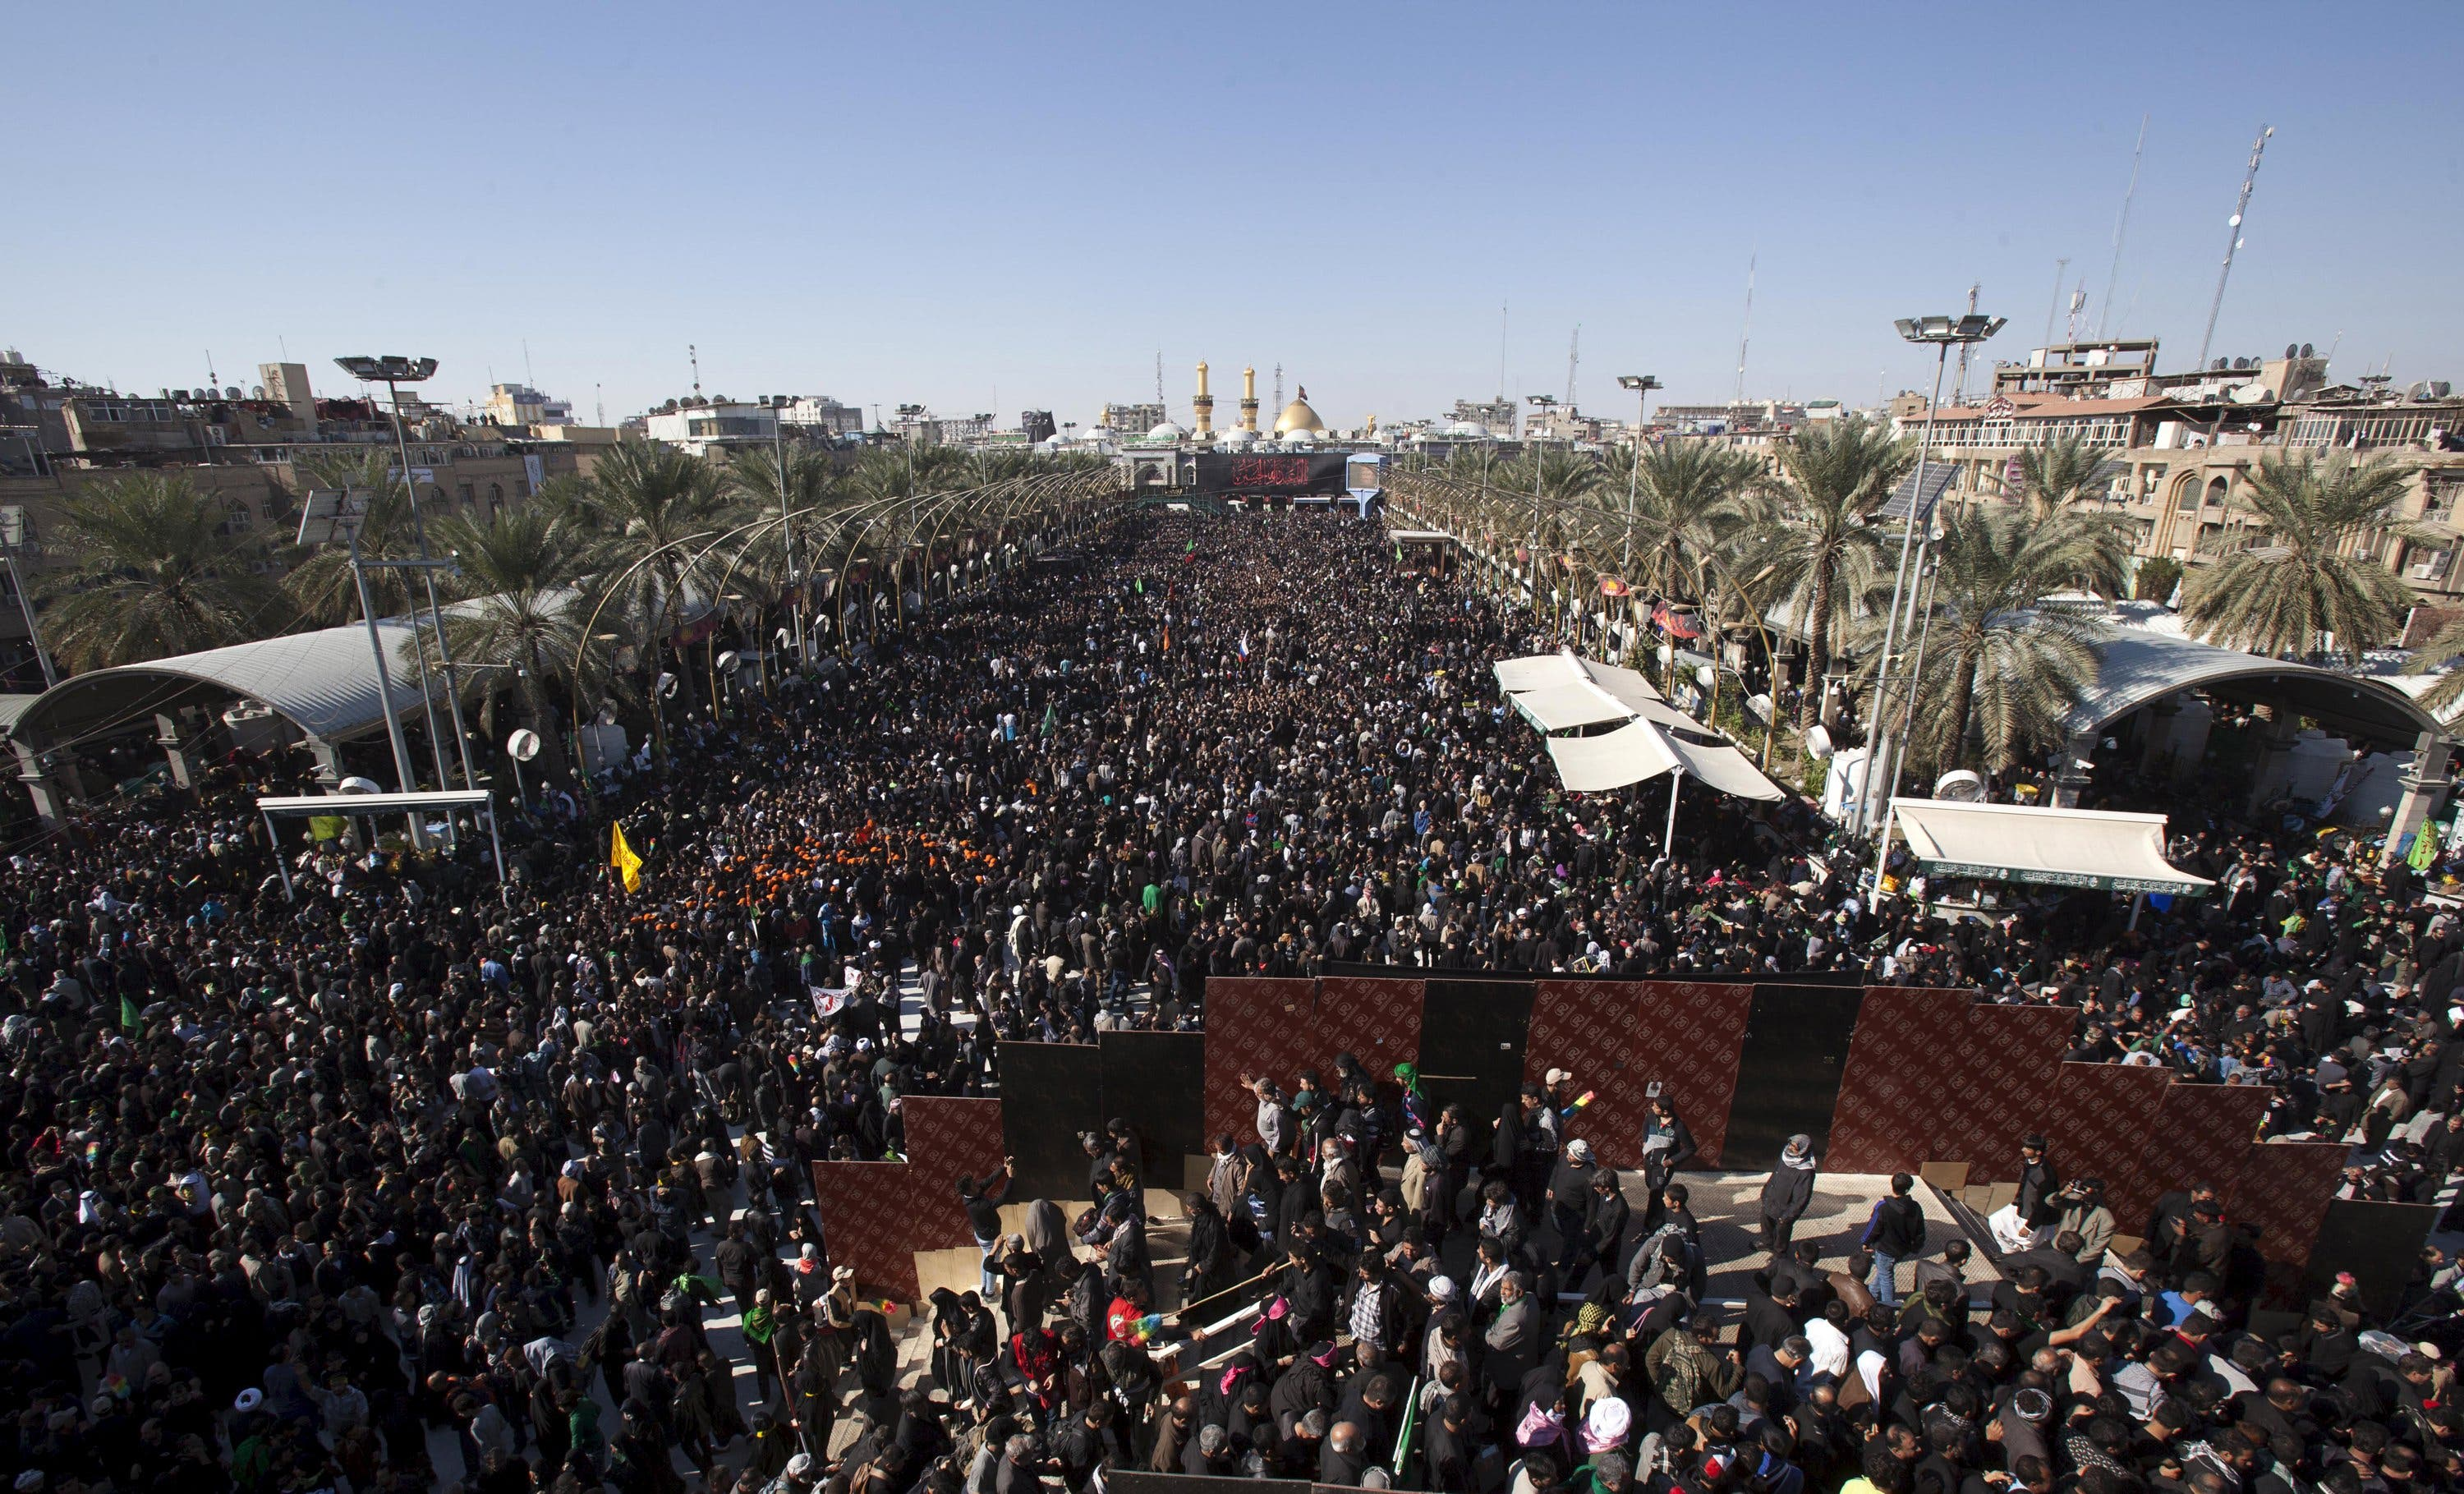 Shi'ite Muslim pilgrims gather for a religious ceremony to observe Arbaeen, which marks the end of a 40-day mourning period following Ashura, in Kerbala, south of Baghdad, December 3, 2015.